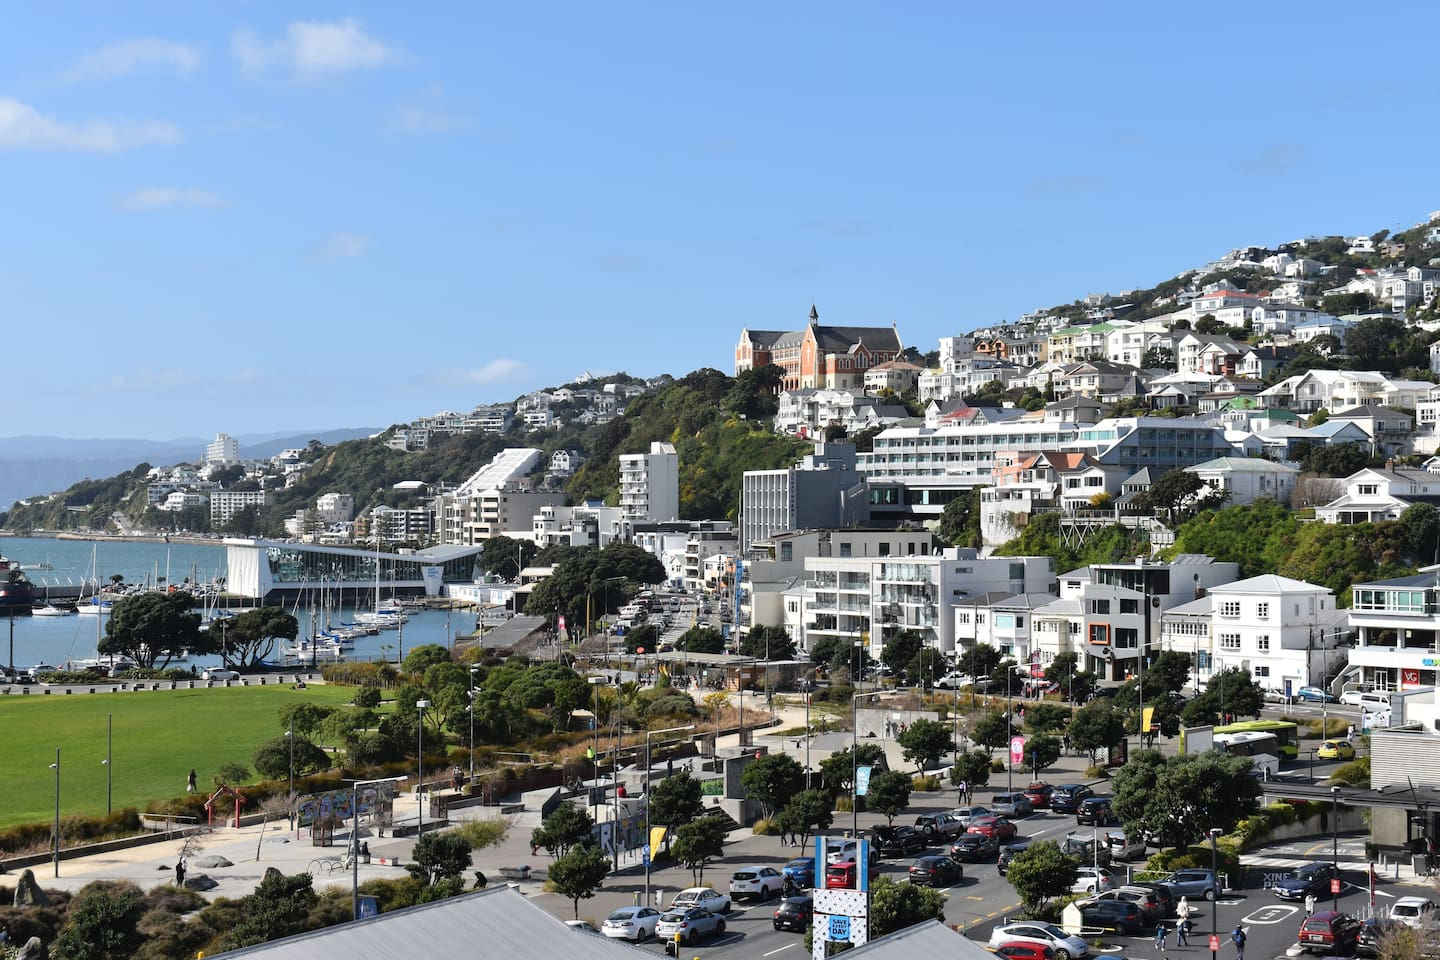 Lovely views of Wellington's waterfront and hills